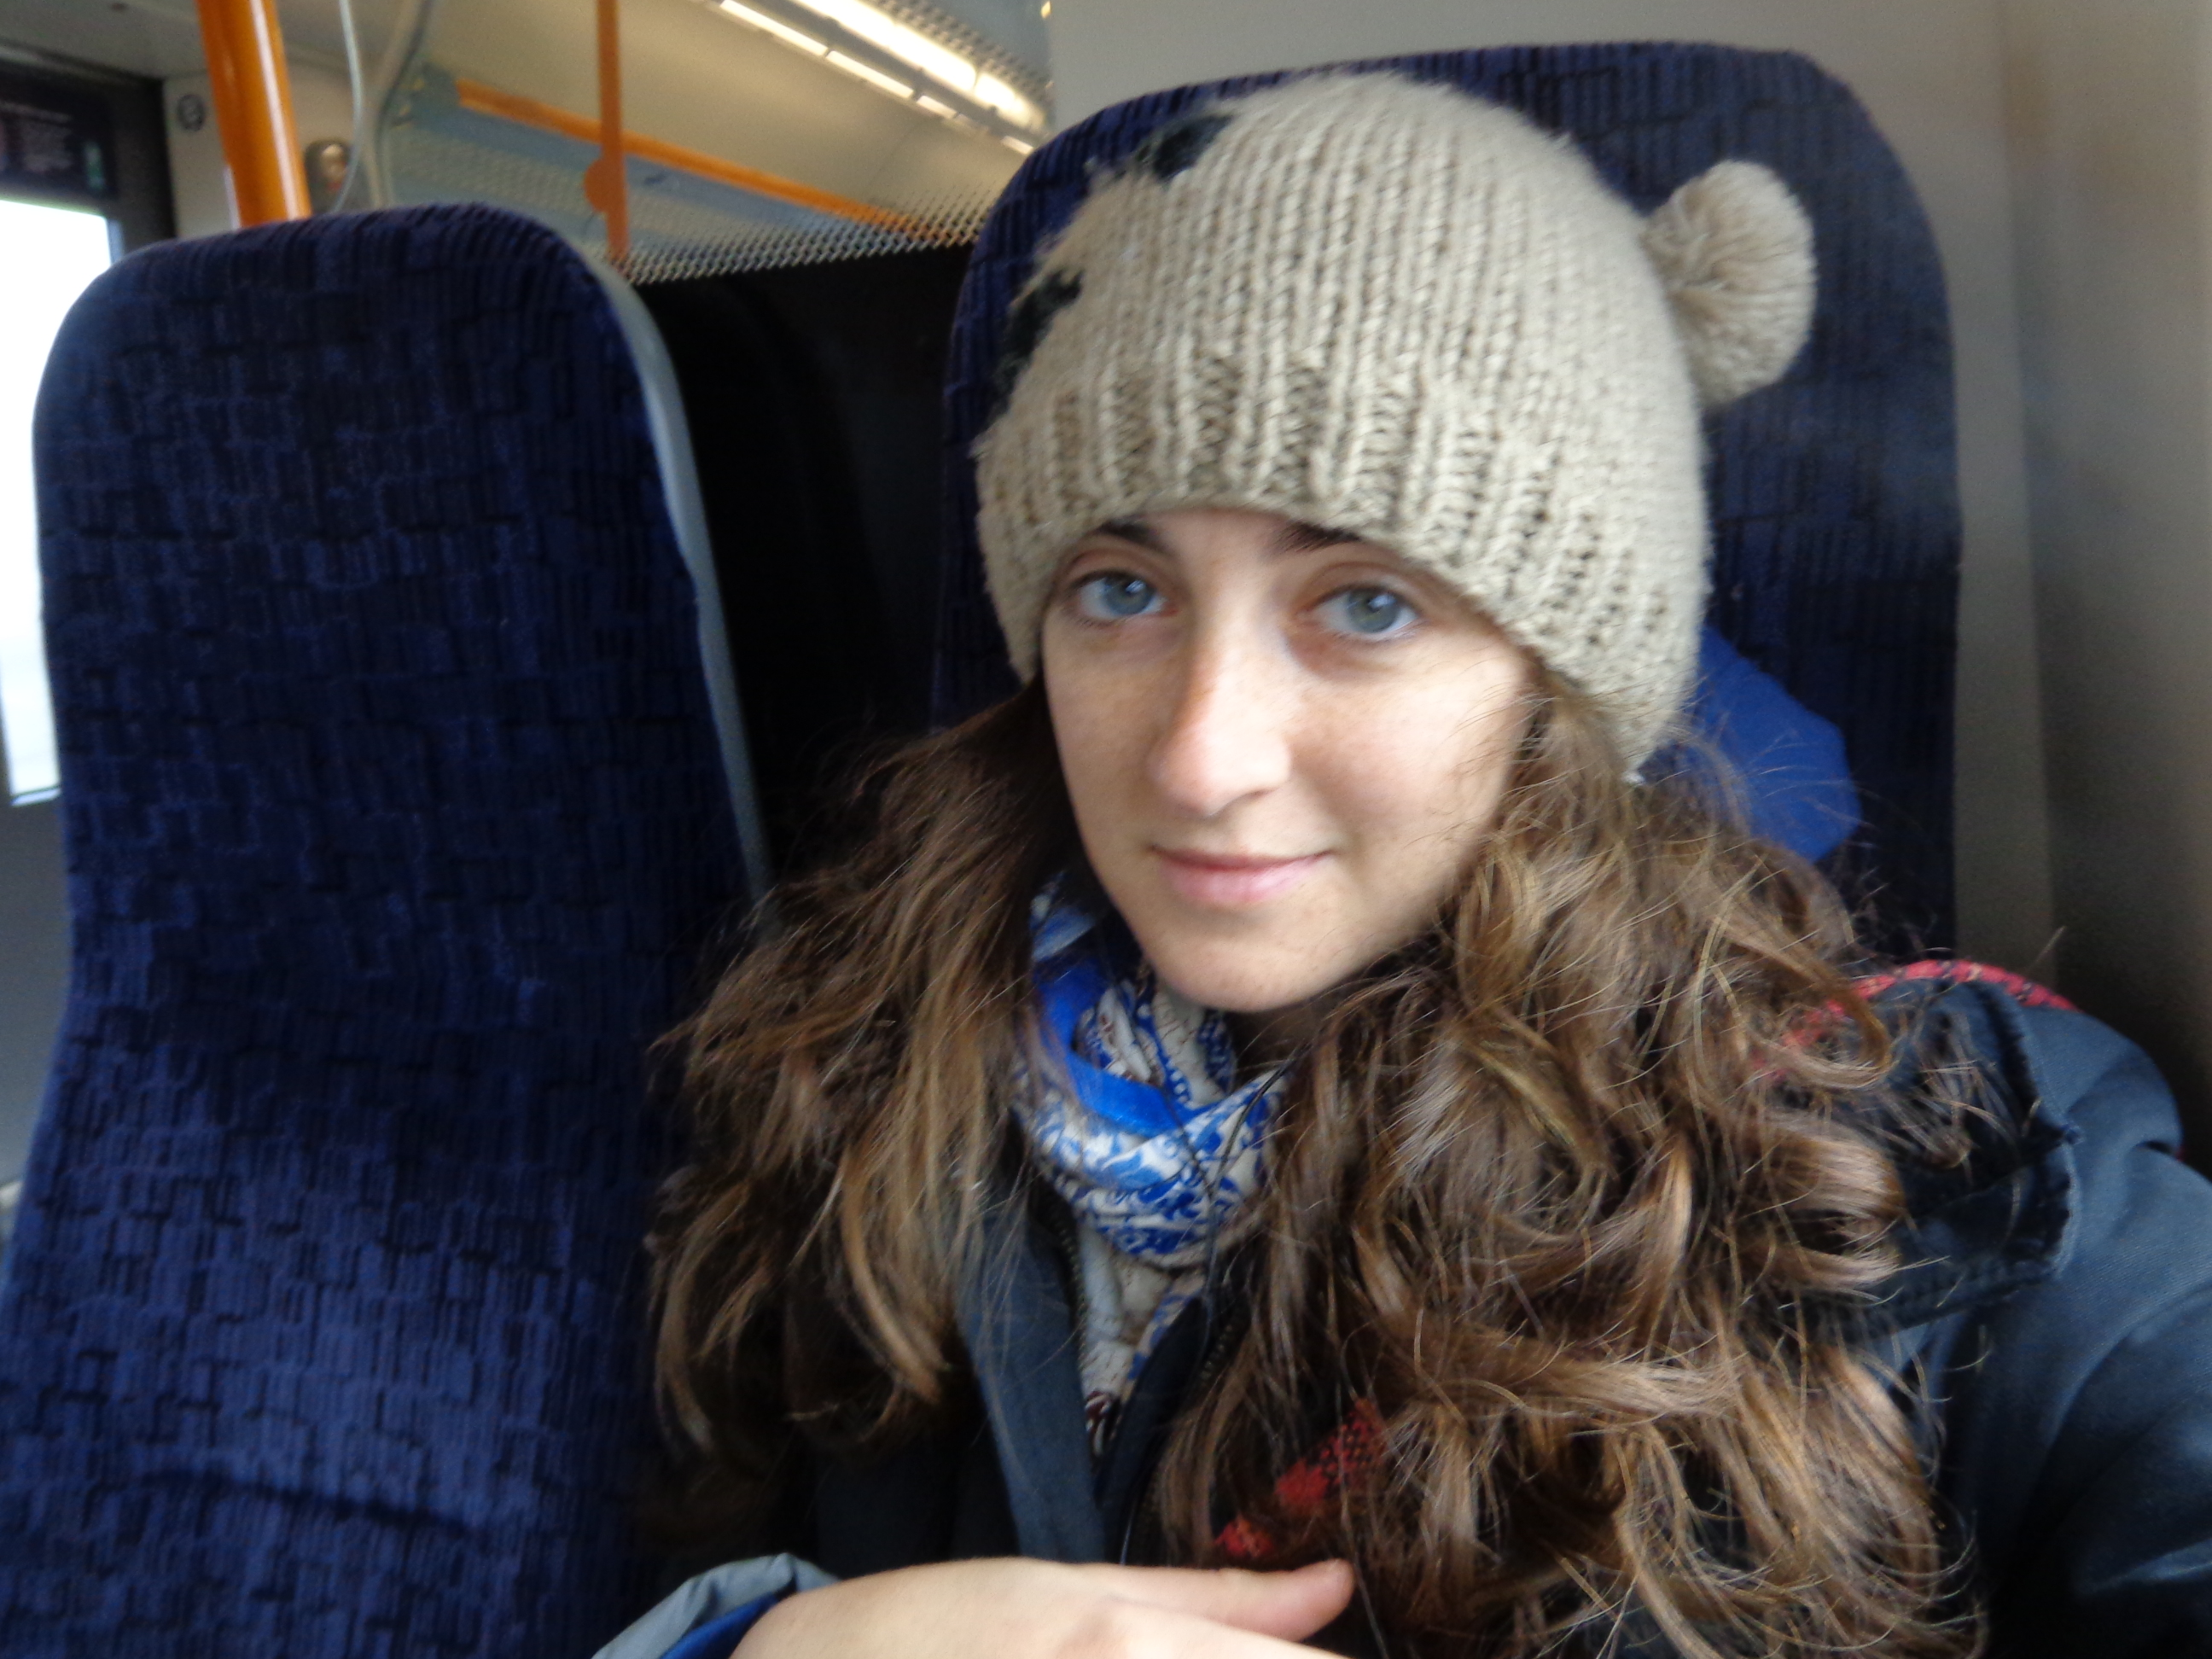 On the train. In England. Cause I live here.